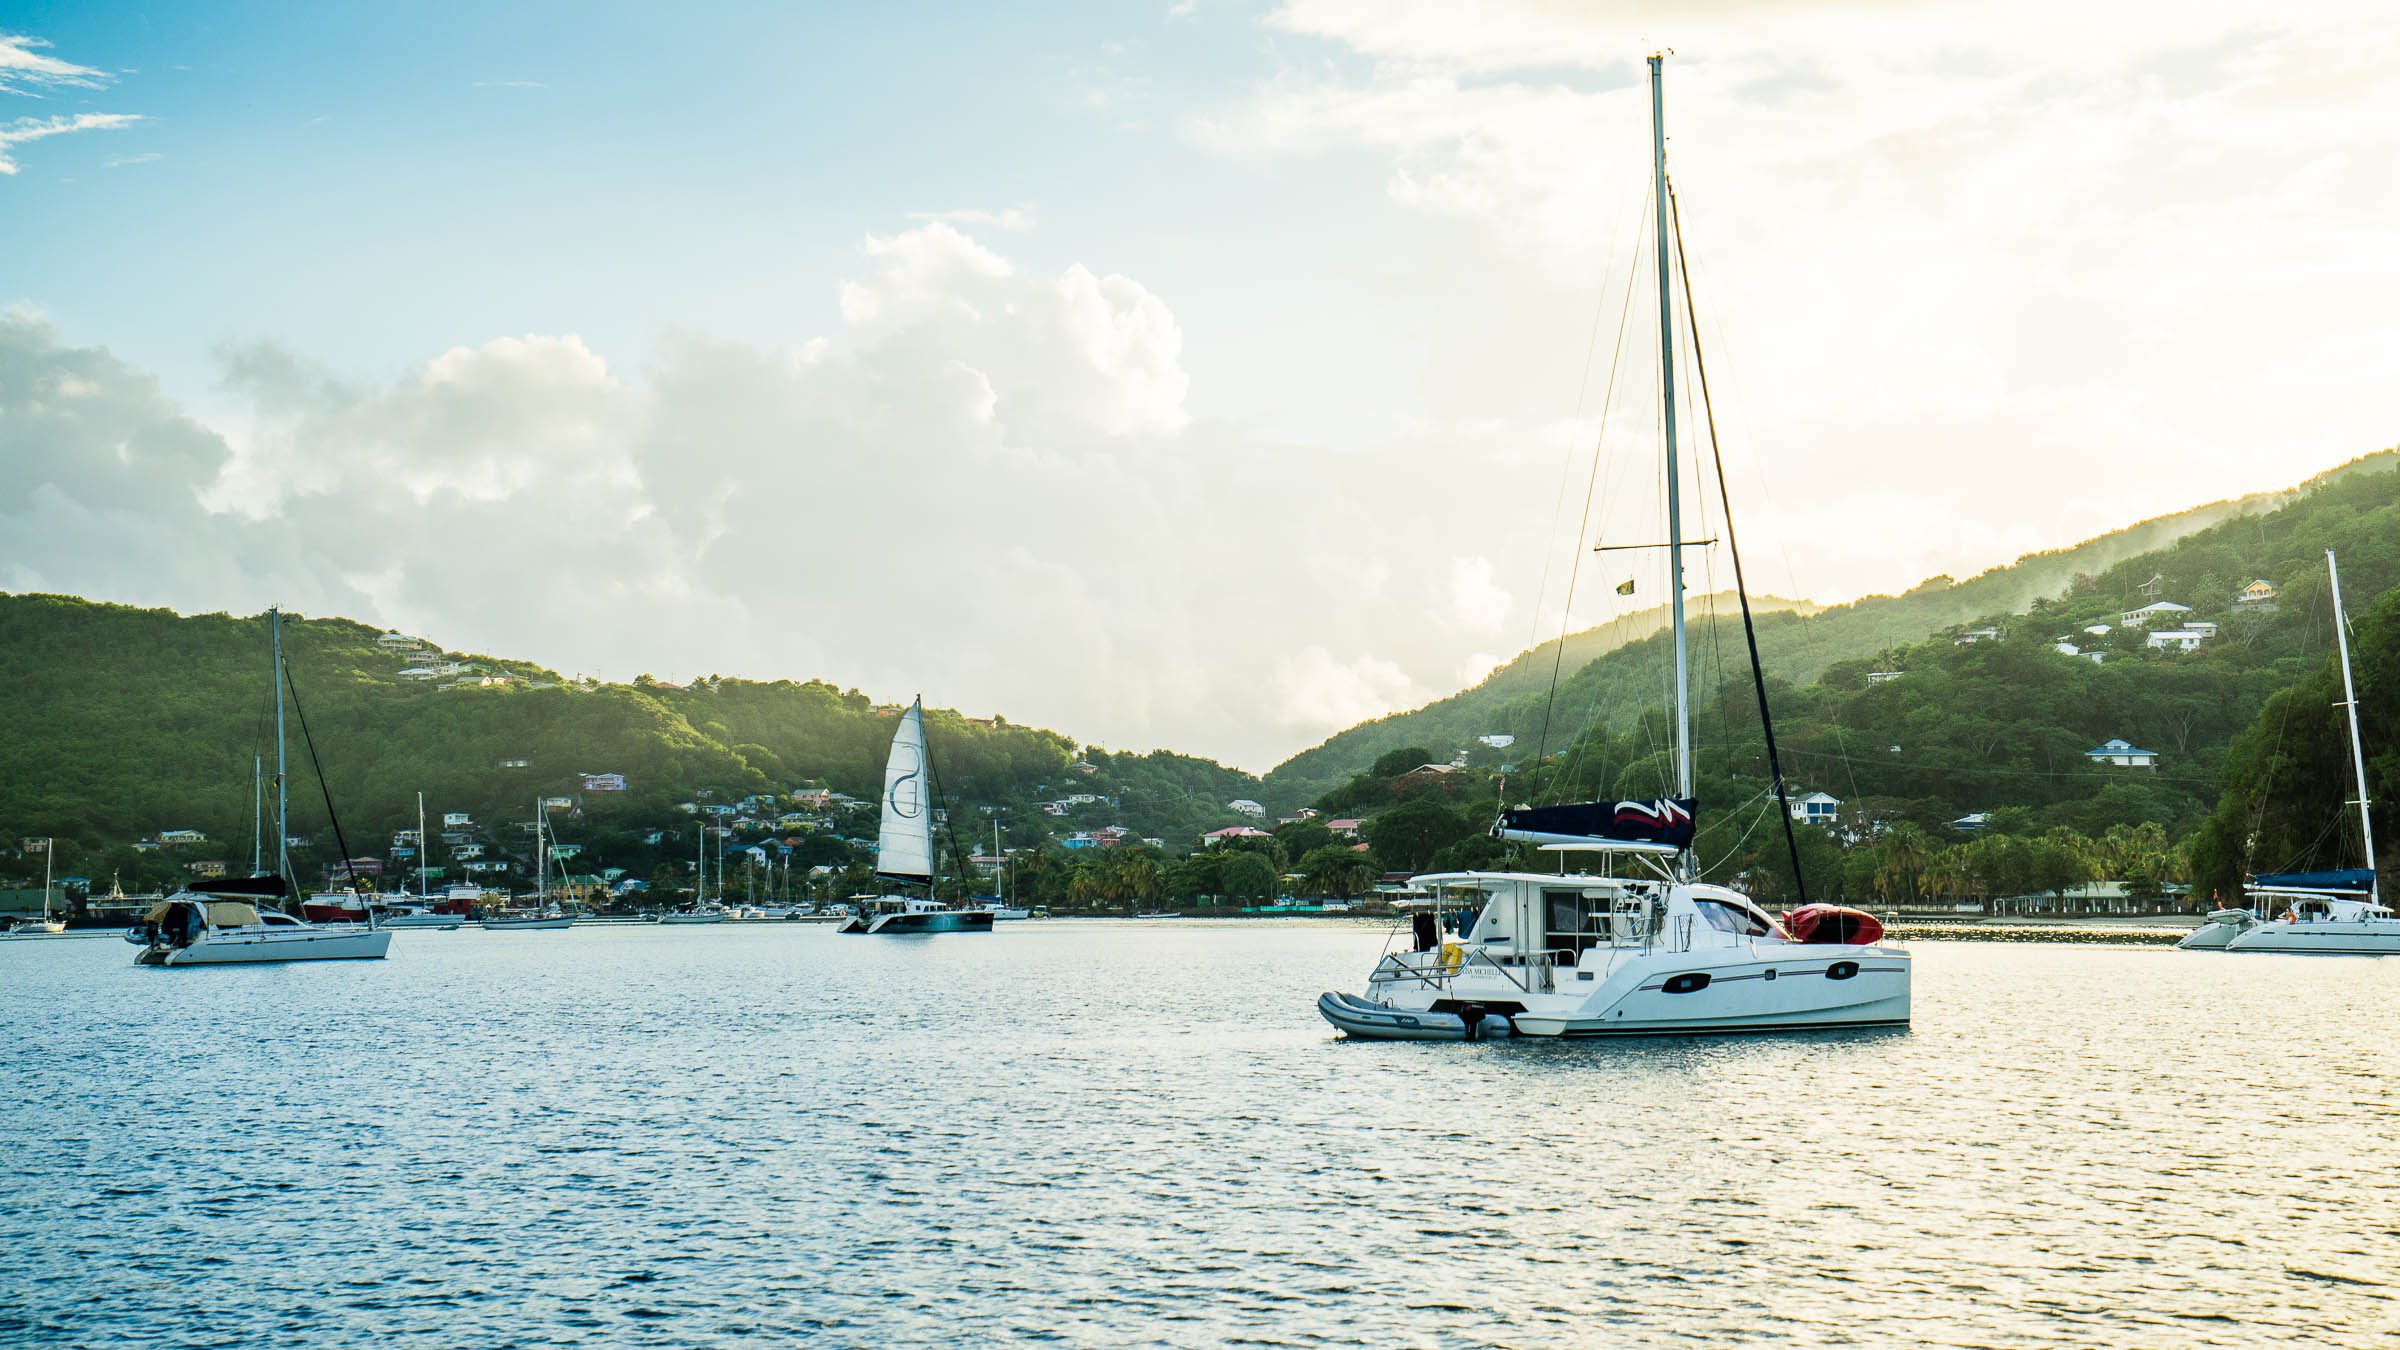 Sailing Admirality Bay, Bequia, The Grenadines by Patrick Bennett